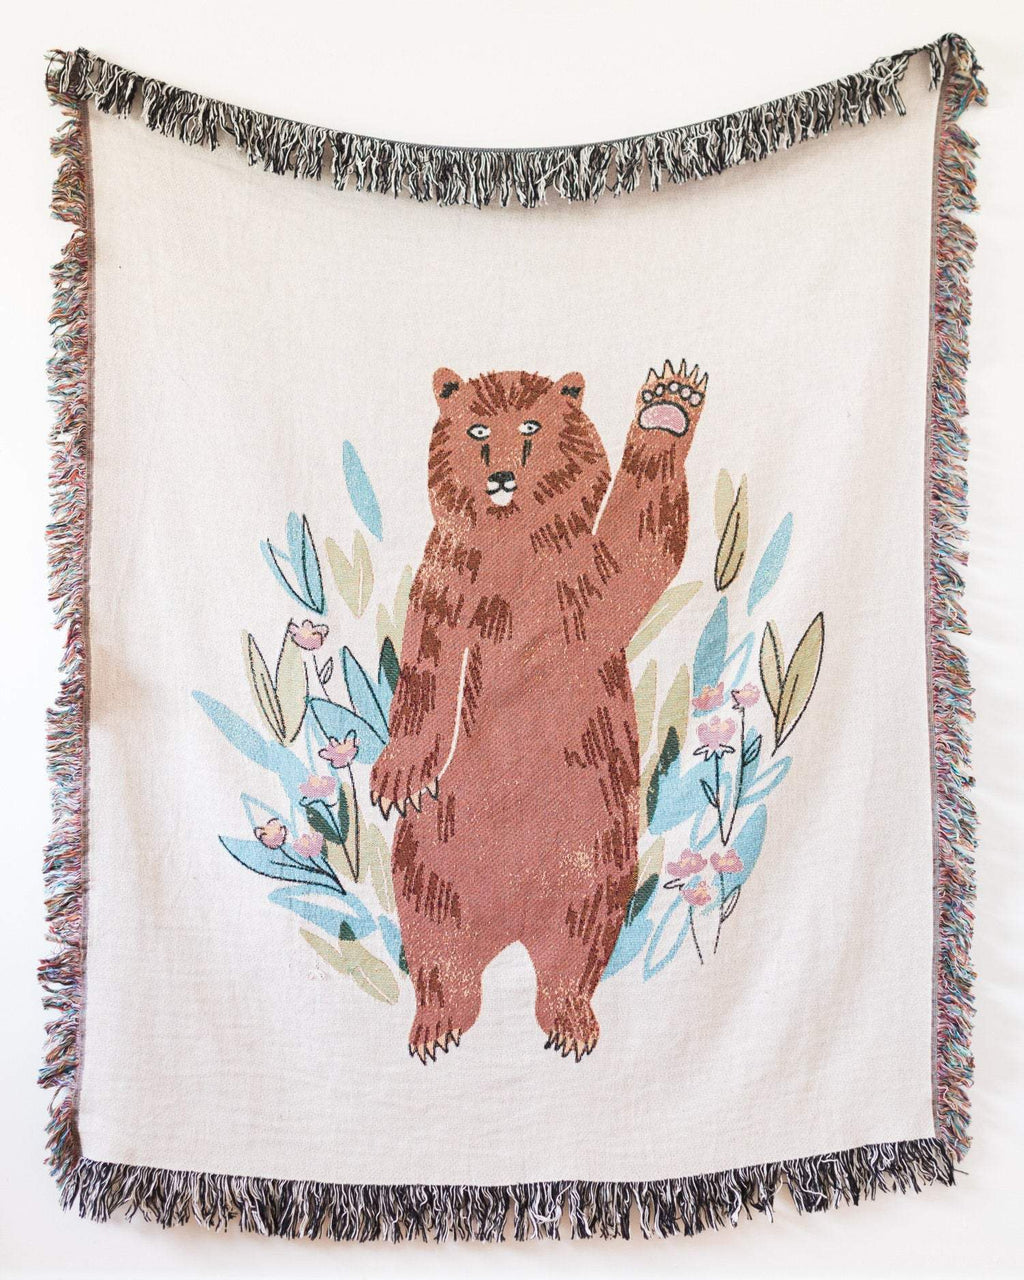 Waving Bear Throw Blanket